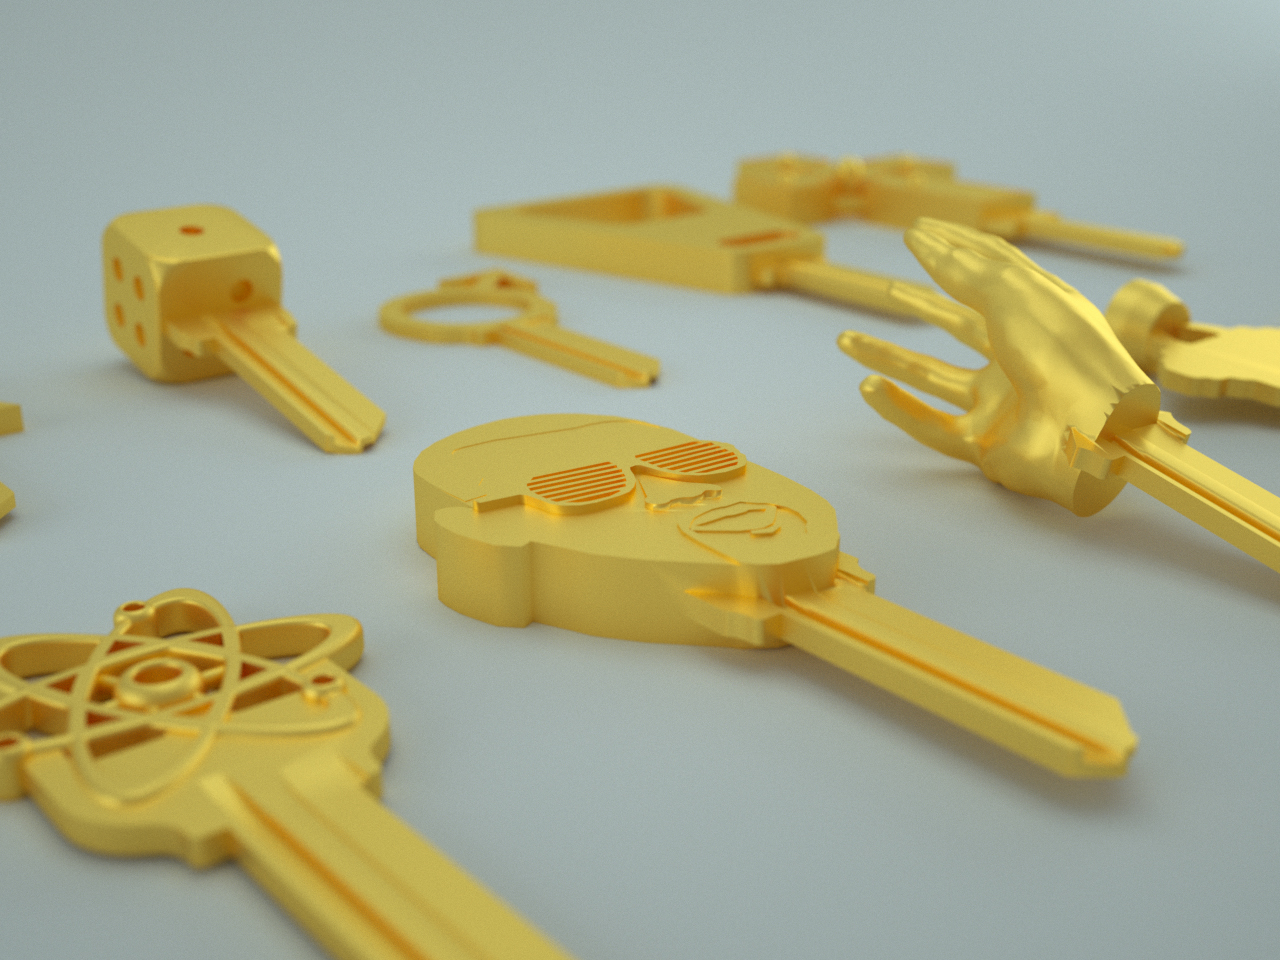 KeyMe now offering customizable 3-D keys